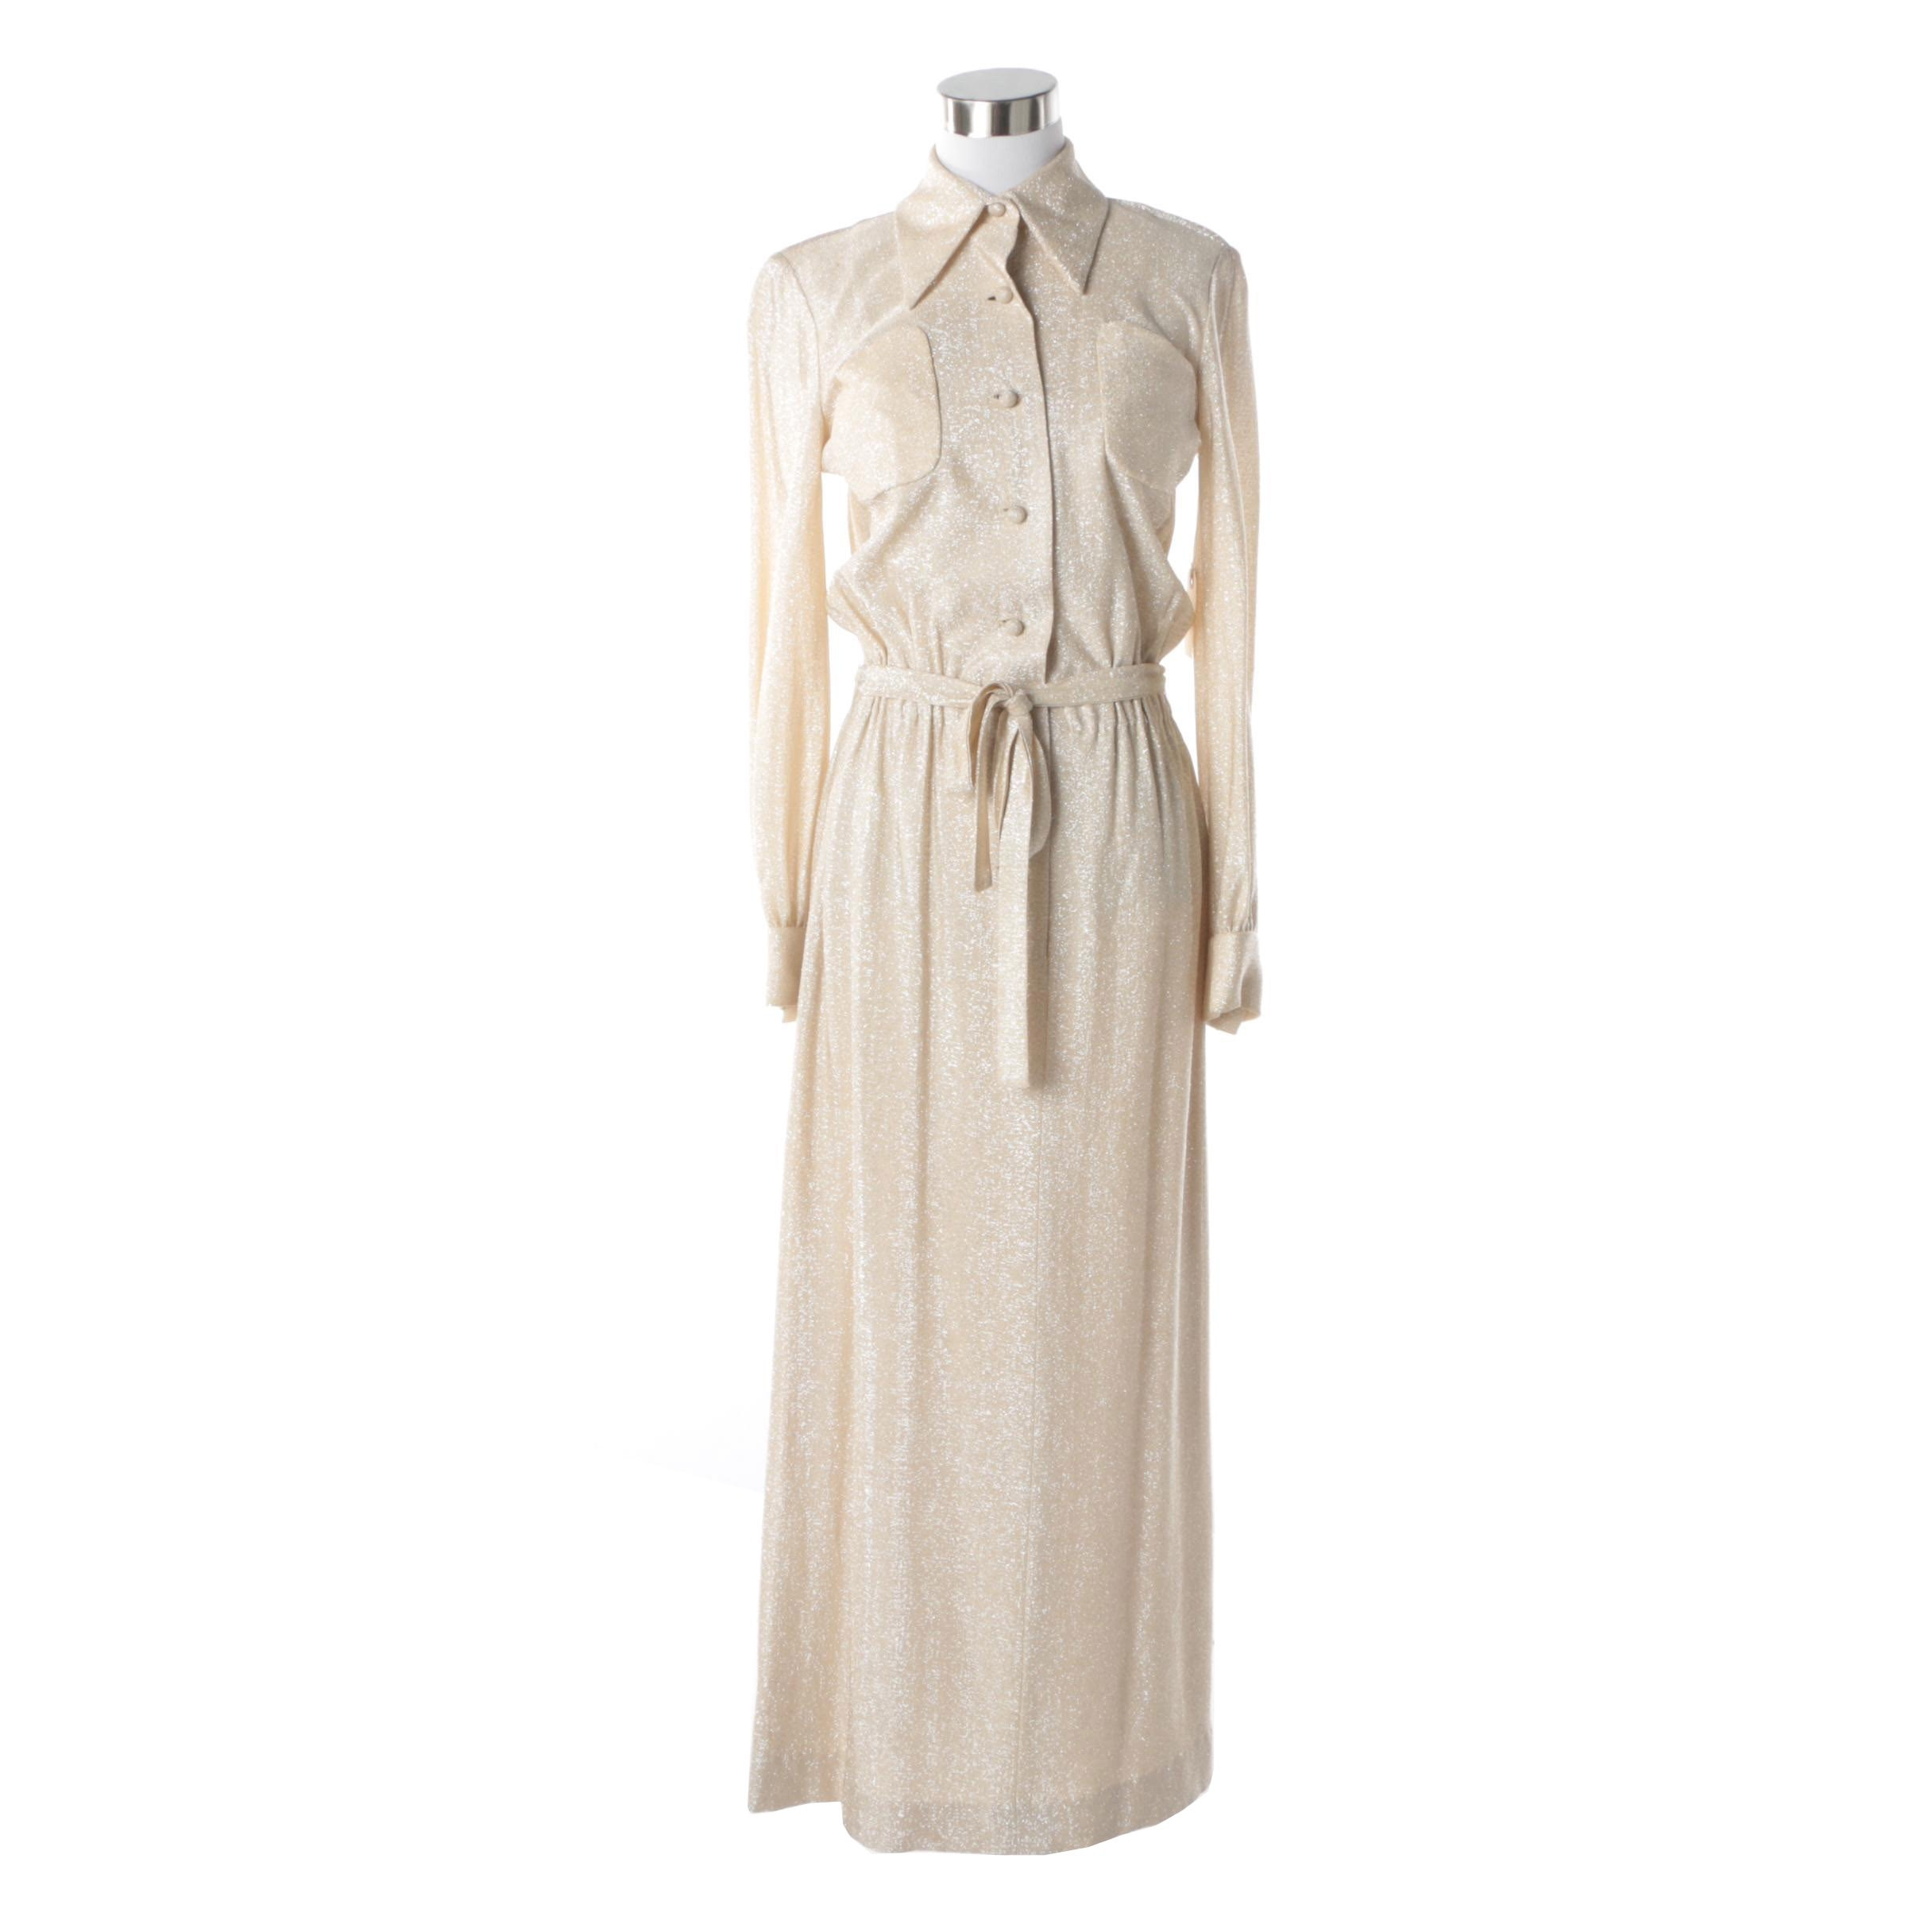 Women's 1970s Vintage Geoffrey Beene Champagne and Metallic Knit Maxi Dress